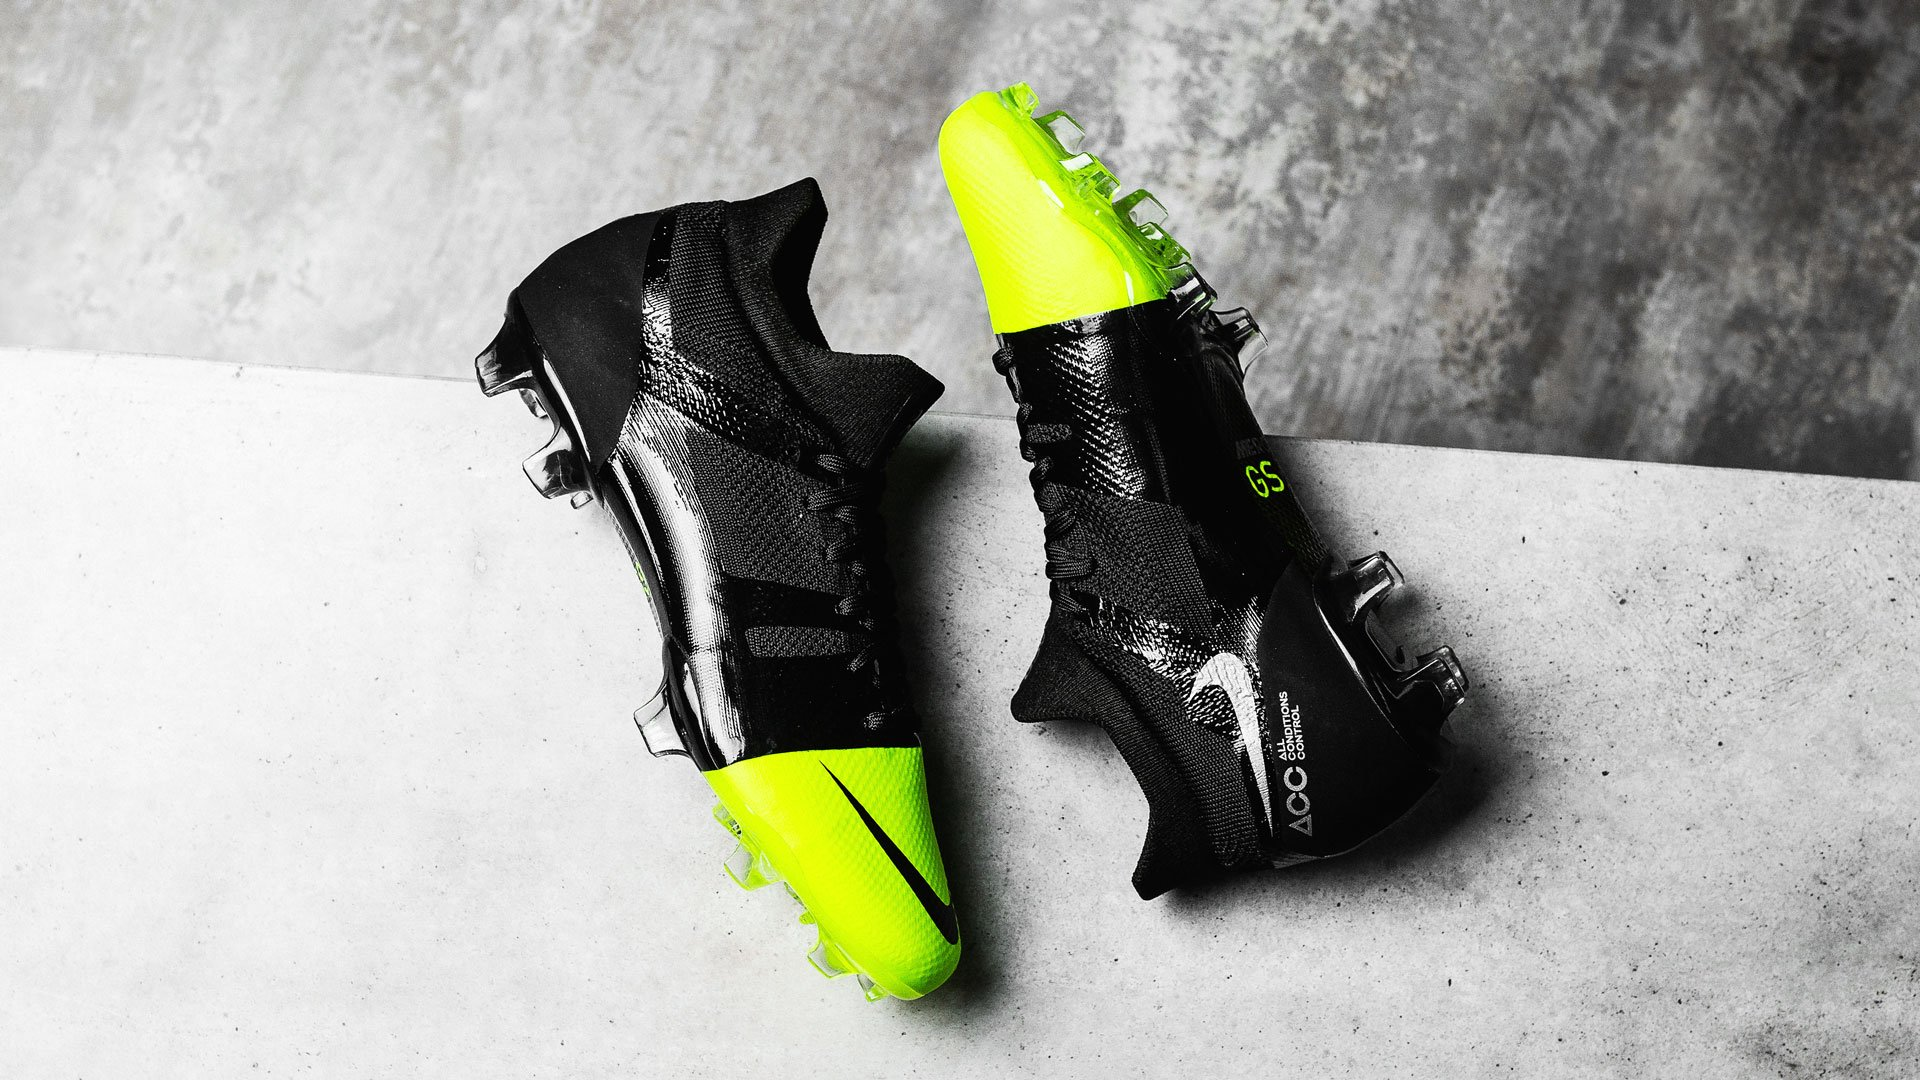 De trato fácil FALSO gas  Nike Greenspeed 360 | Read more about the Limited Edition boot